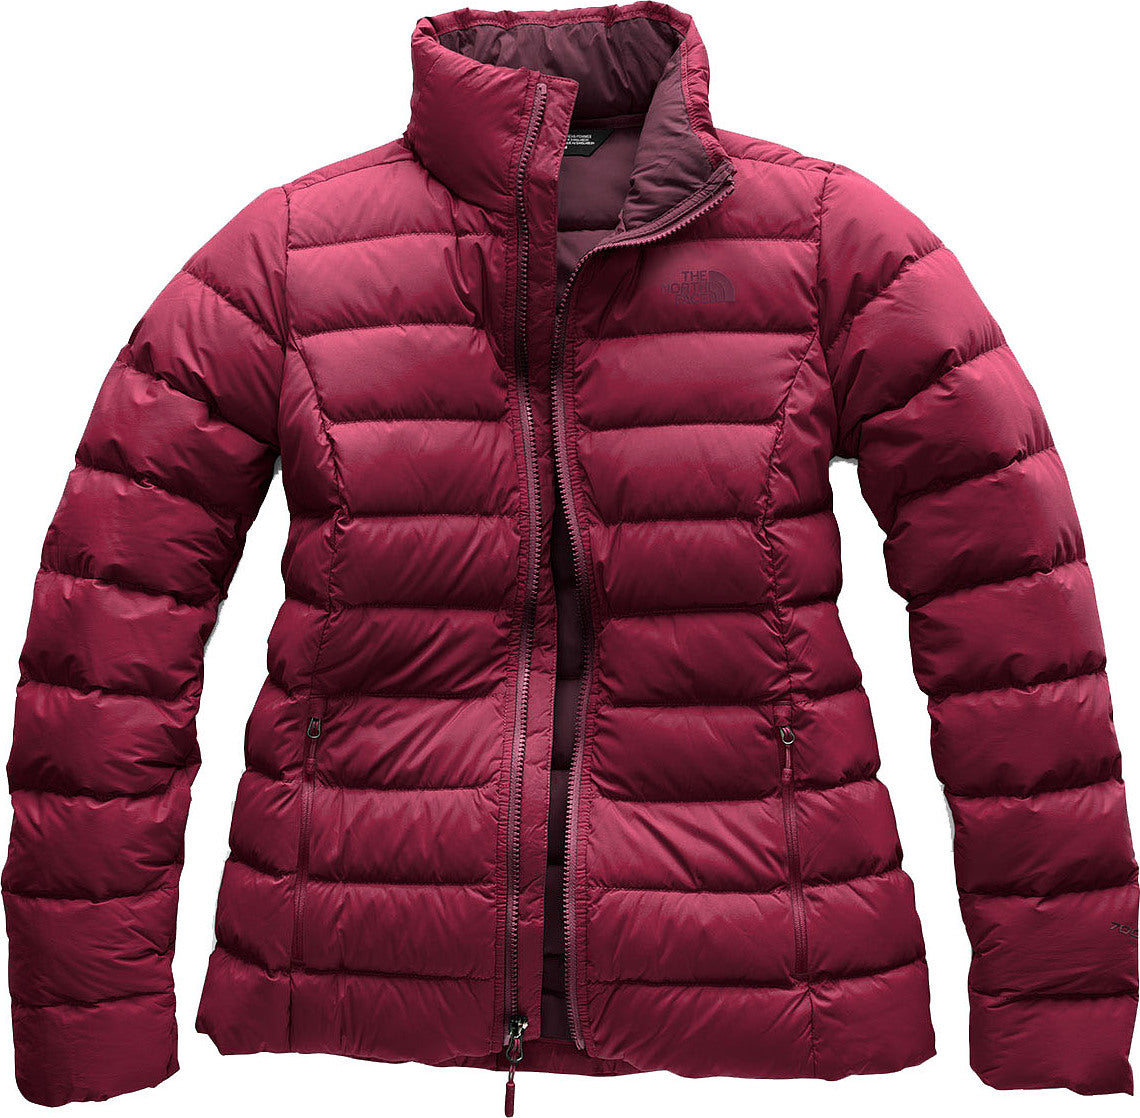 6ef337804 The North Face Women s Stretch Down Jacket